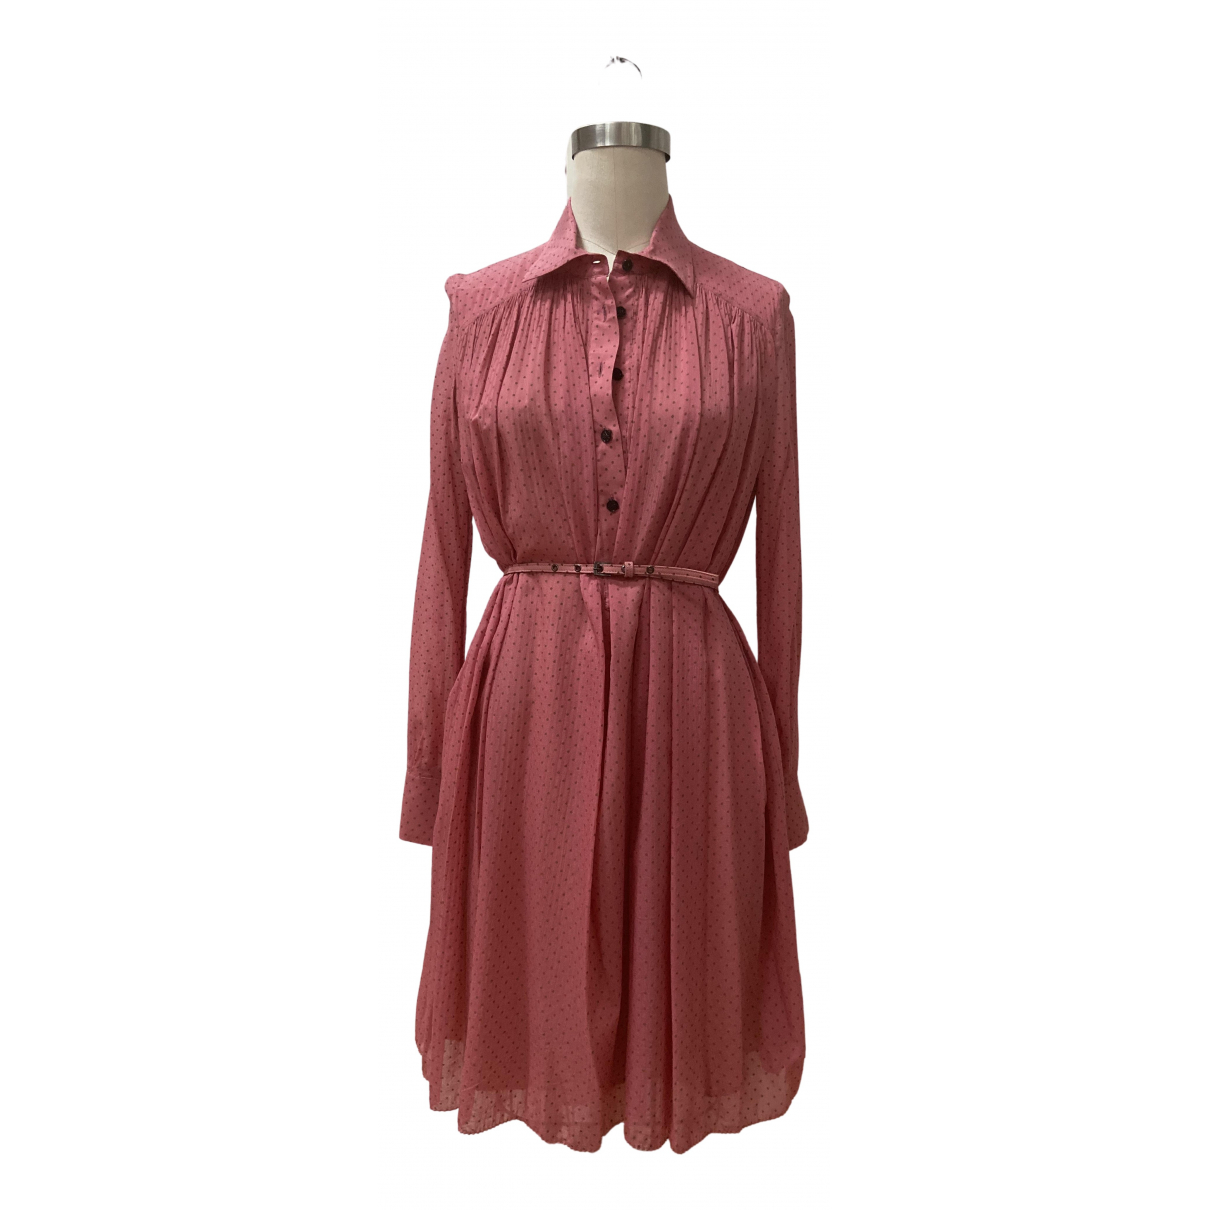 Alessandro Dellacqua \N Pink Silk dress for Women 40 IT